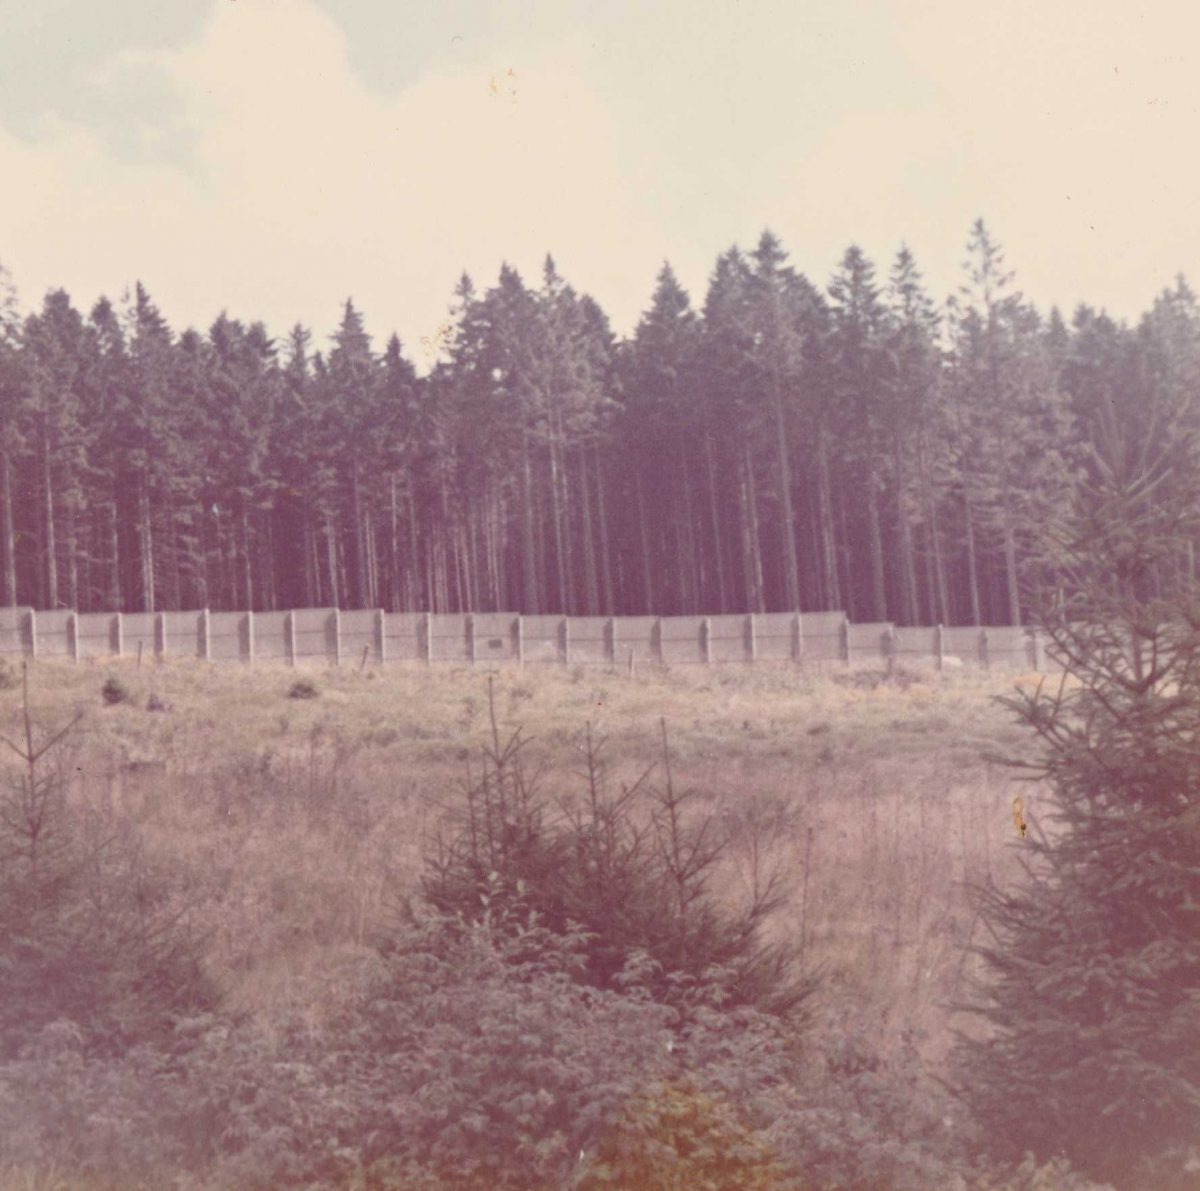 Visiting the inner German border in 1972